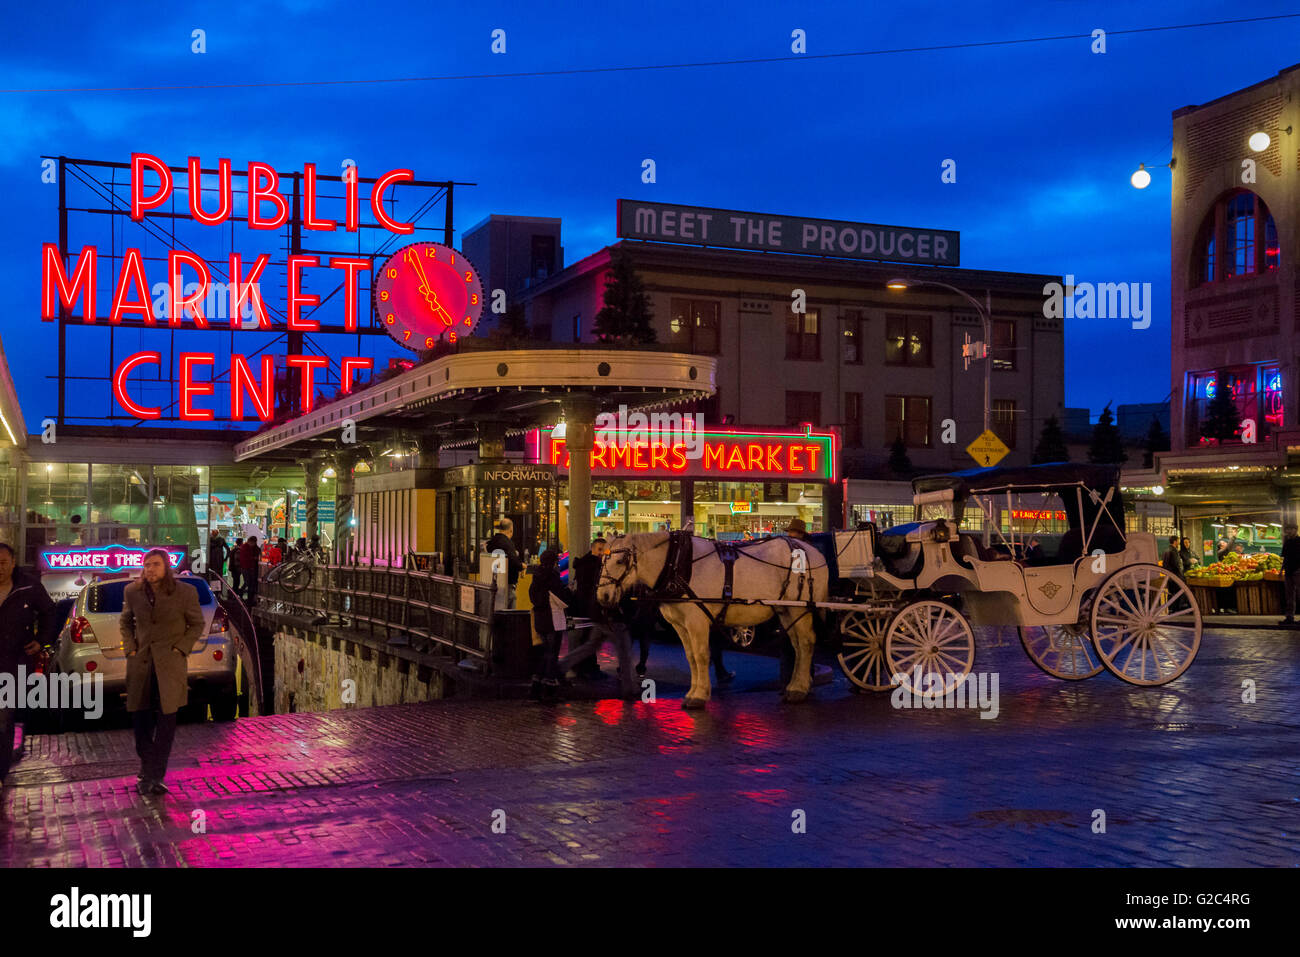 Pike Street Market, Seattle, Washington state, USA - Stock Image